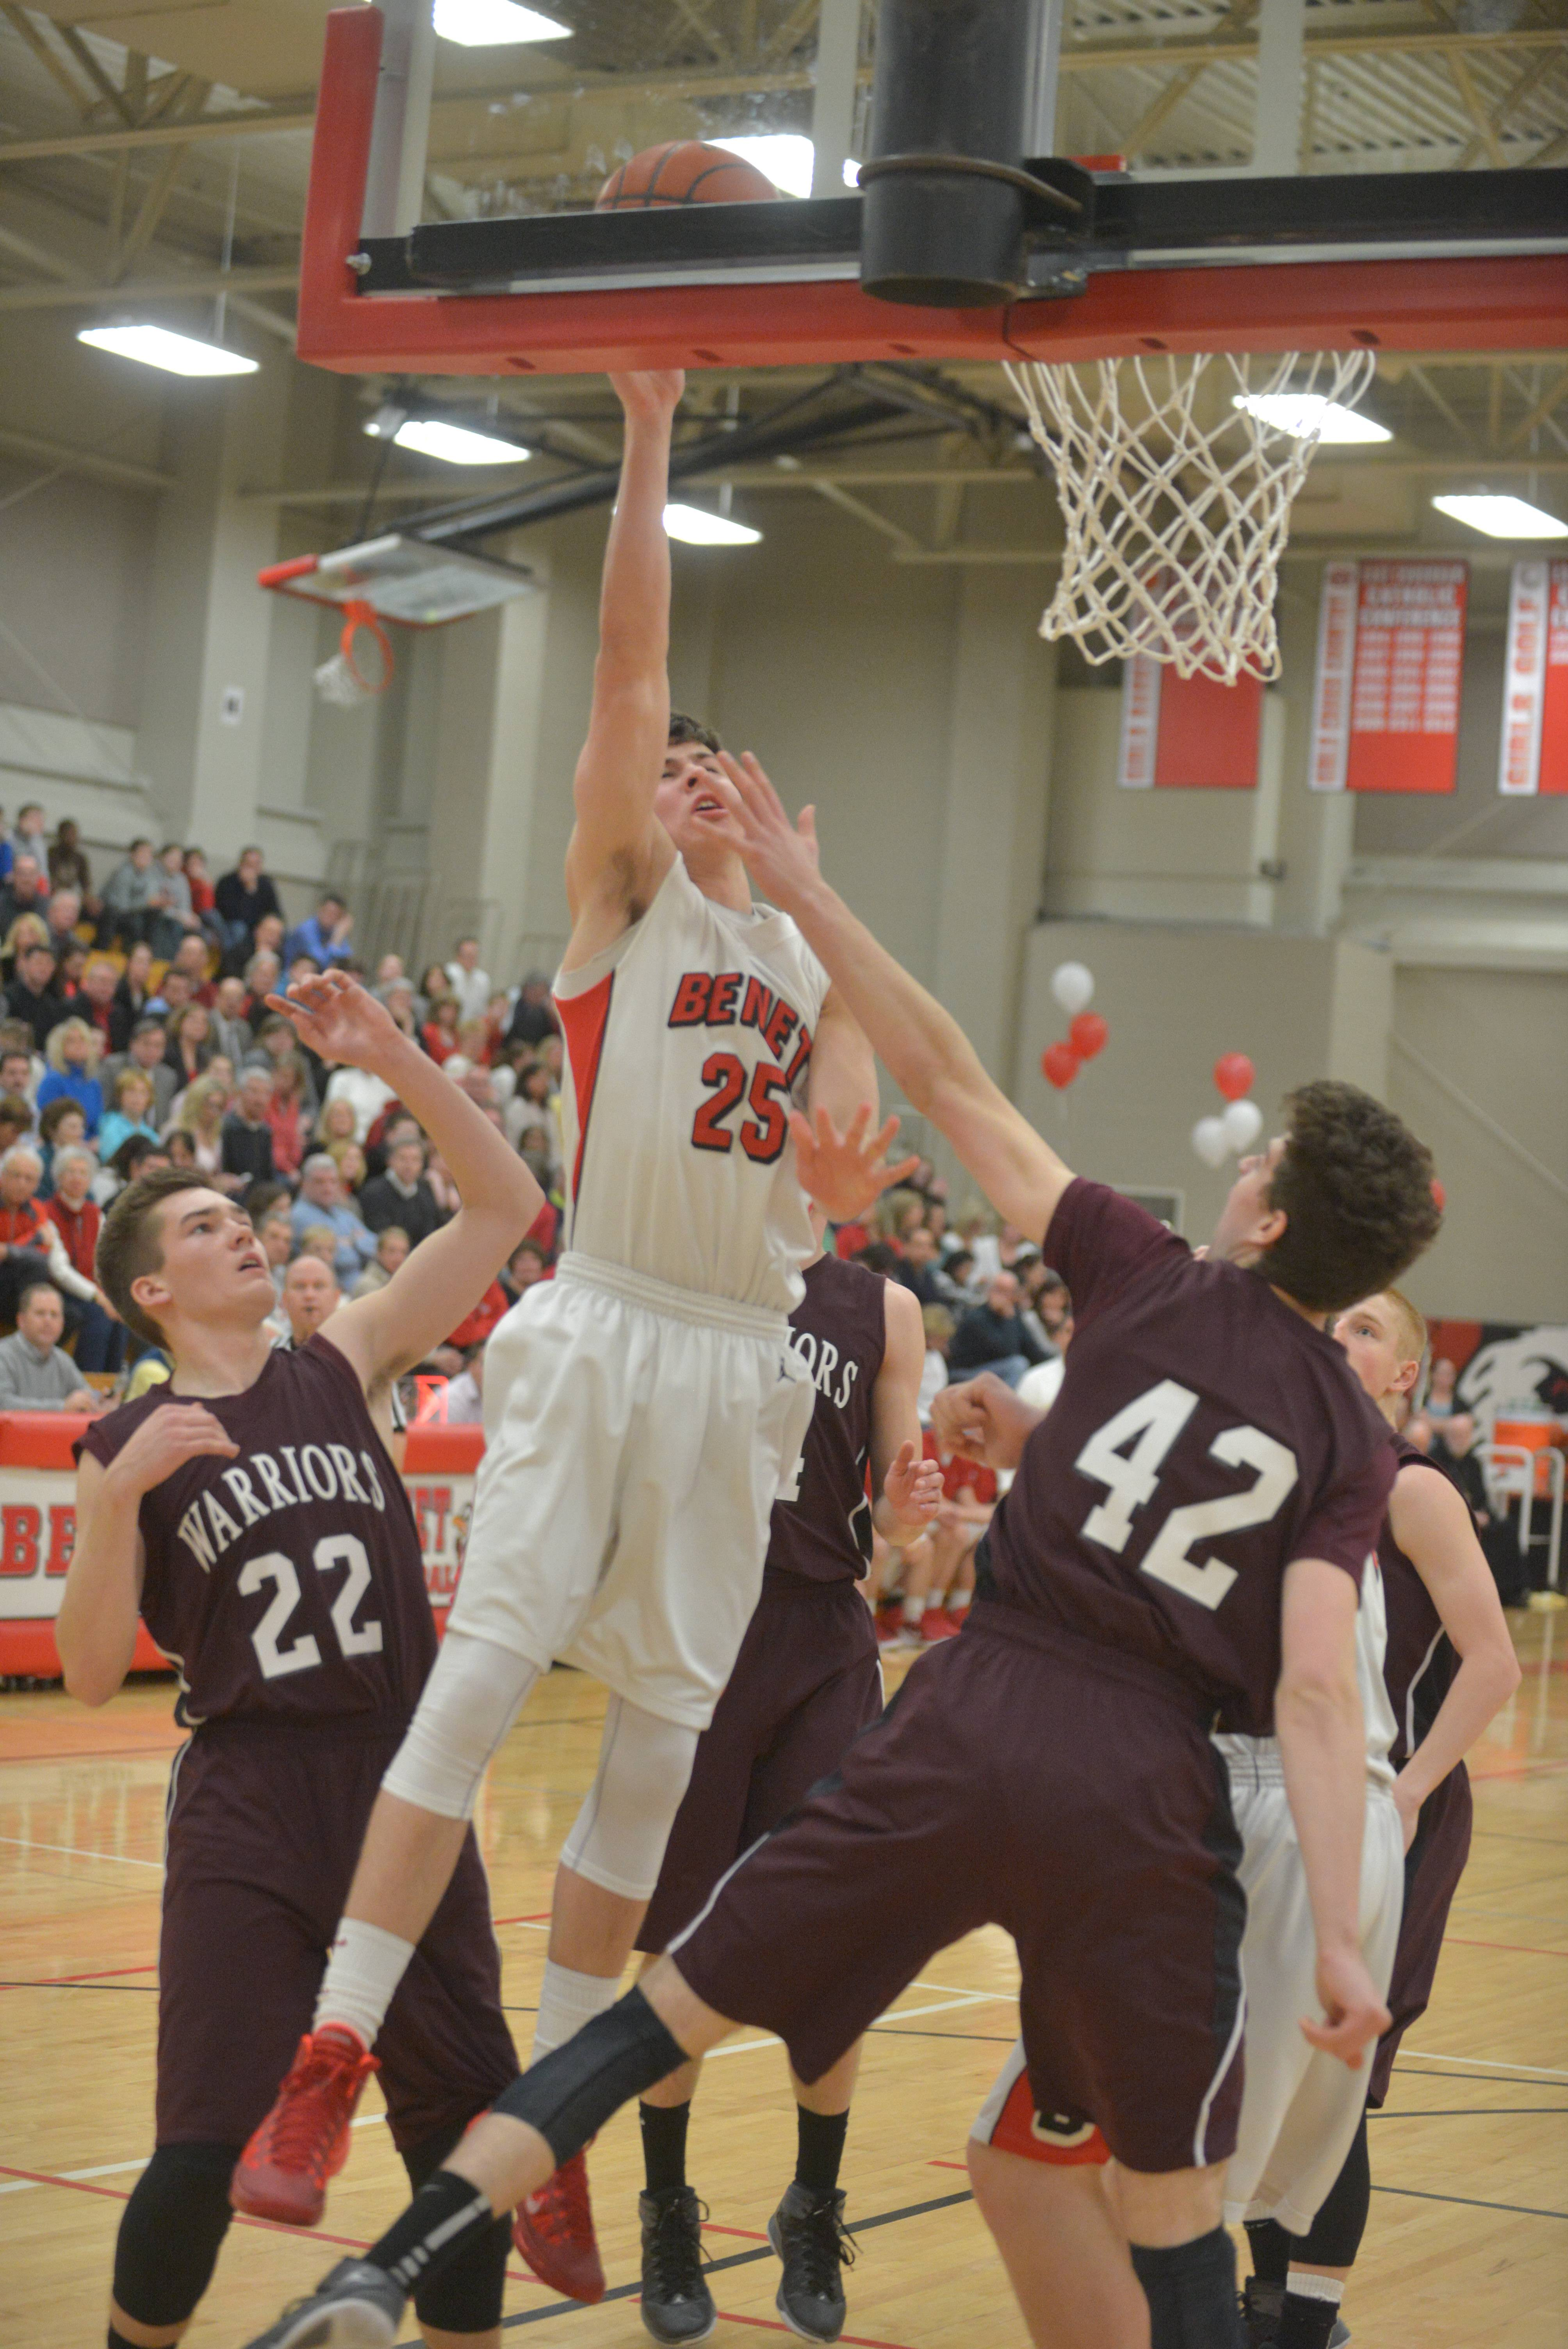 Wheaton Academy at Benet boys basketball .